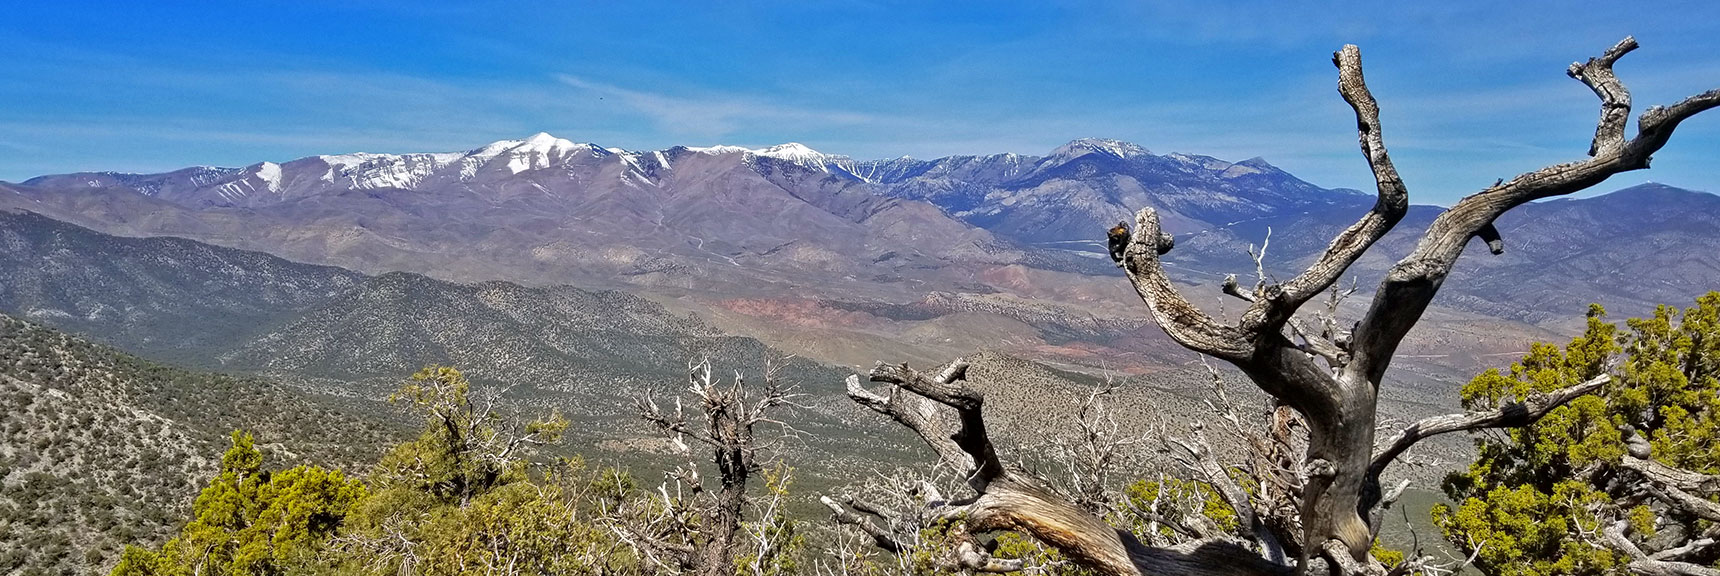 Mt Charleston Wilderness Viewed from Just Below the 7400ft La Madre Mountain Nevada Northern Approach